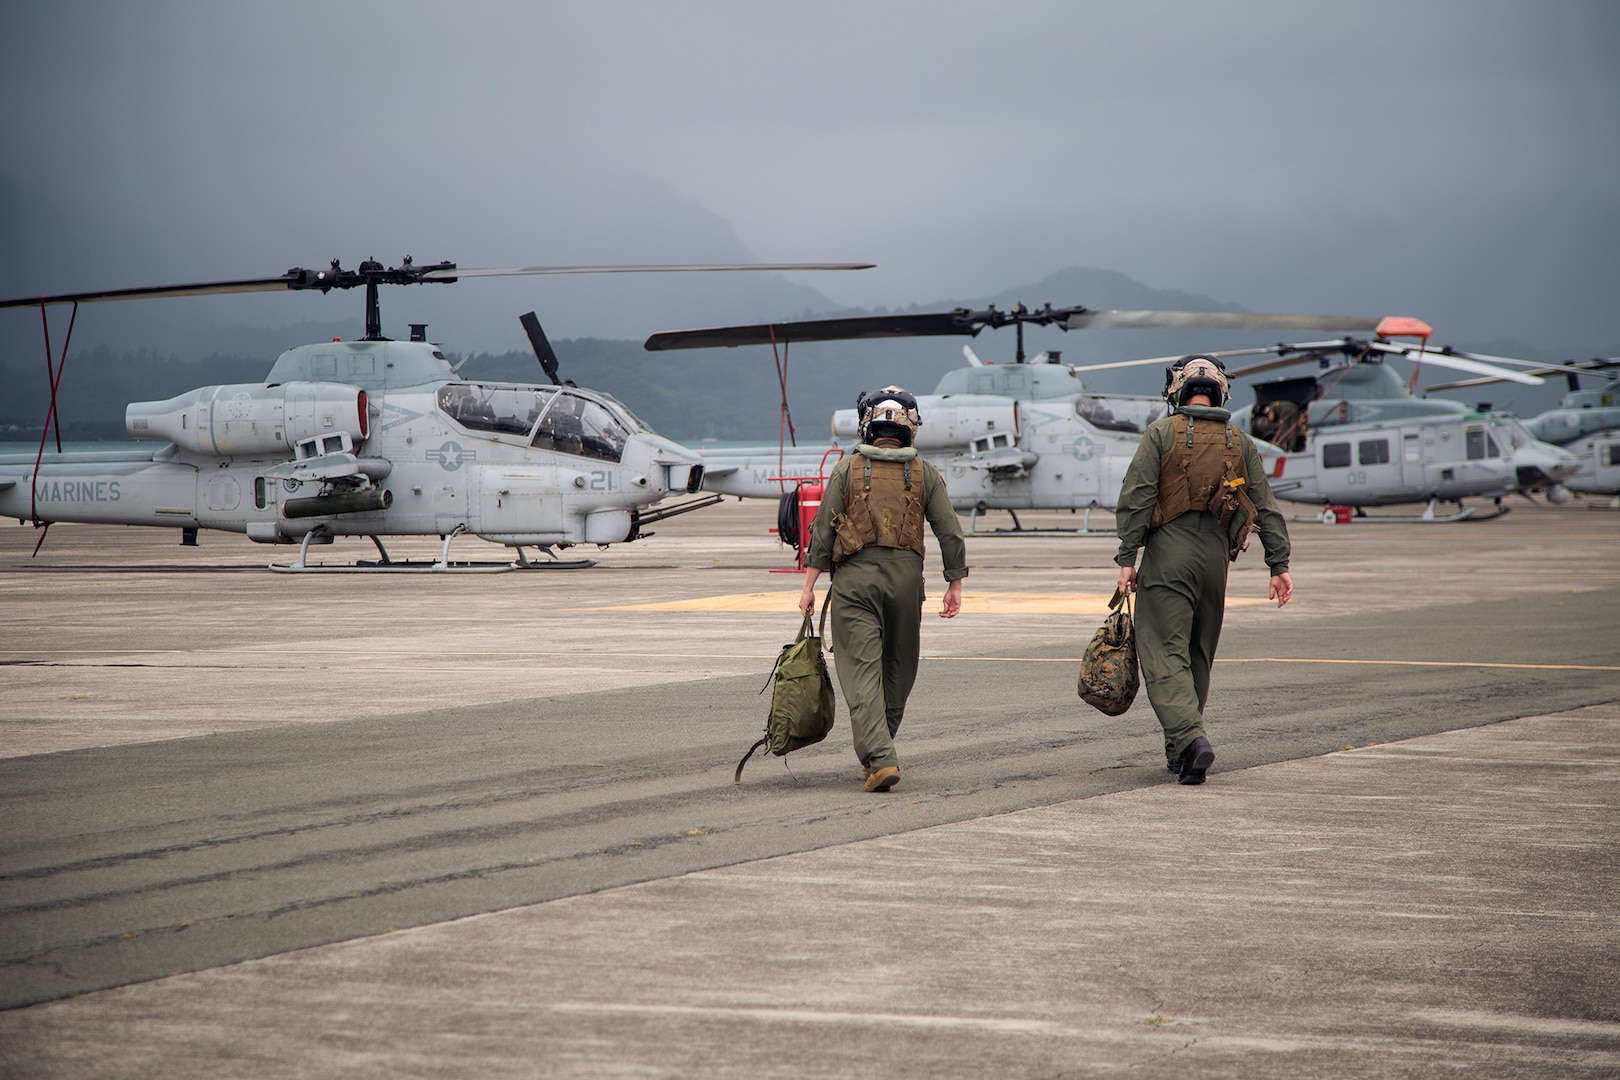 HMLA-367 bids farewell to AH-1W Super Cobra helicopters